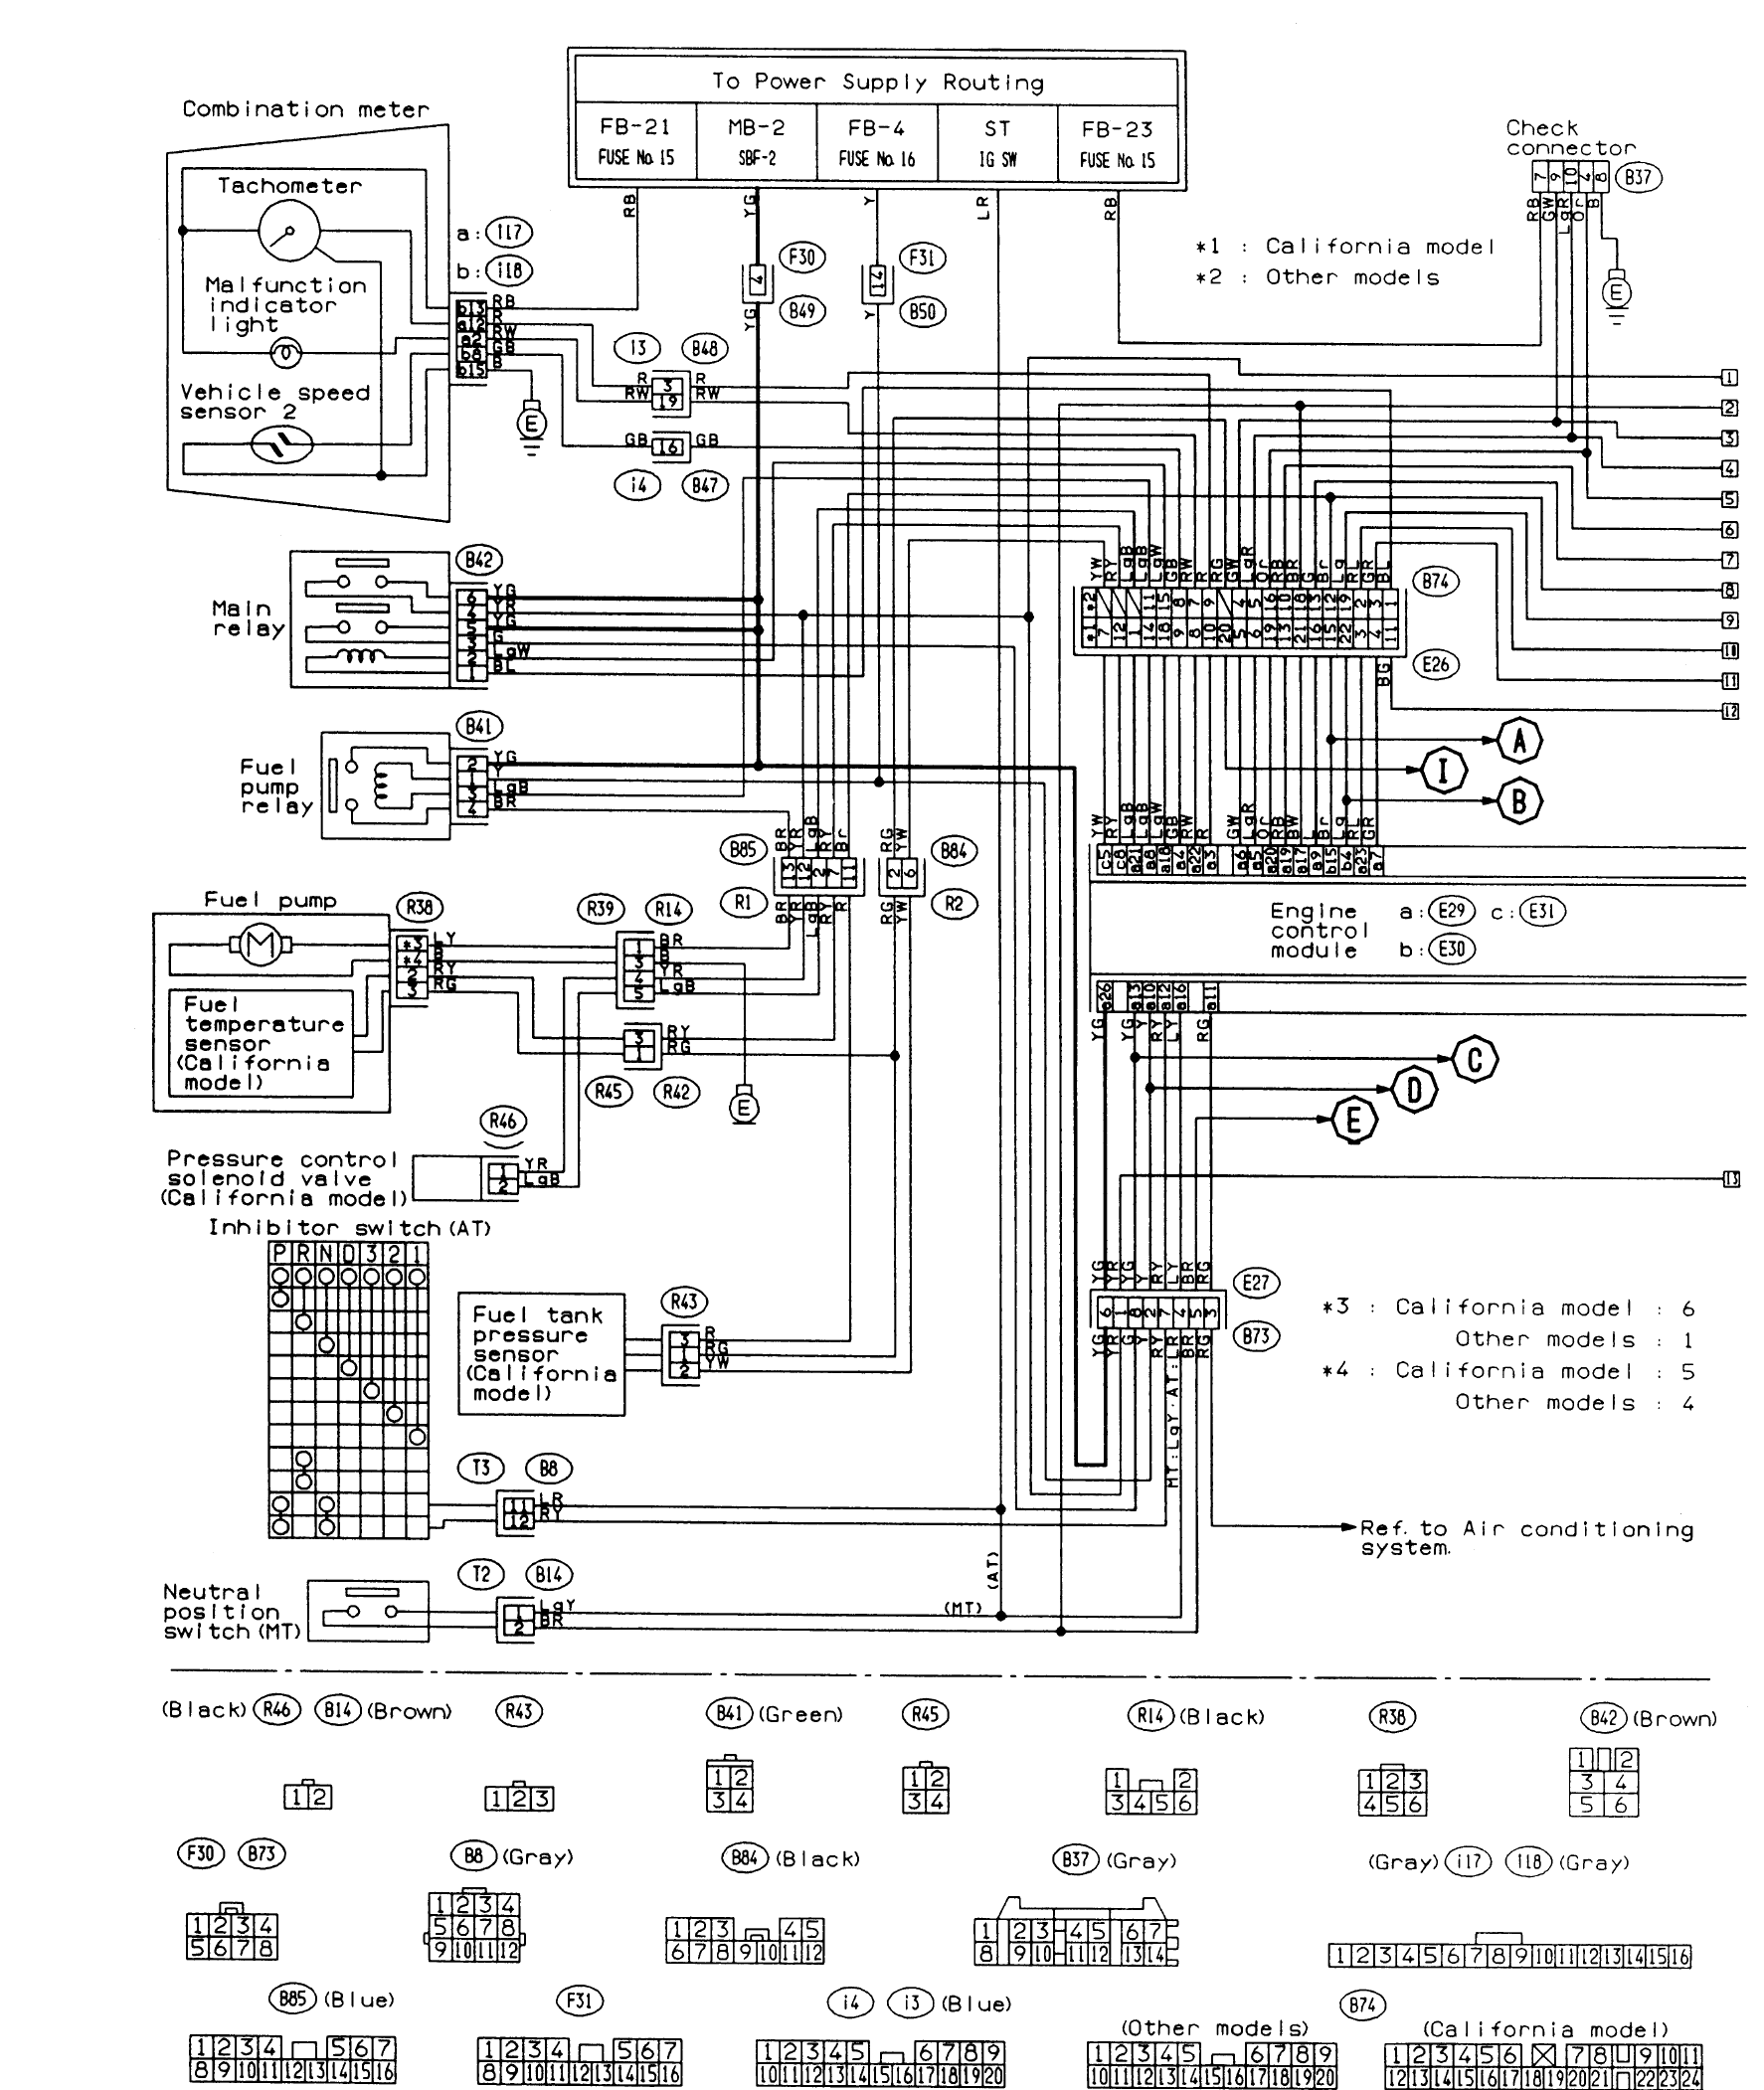 electrical diagram for ac unit in 2009 subaru forester pinouts for 95 impreza 1 8 ecu nasioc [ 1774 x 2102 Pixel ]